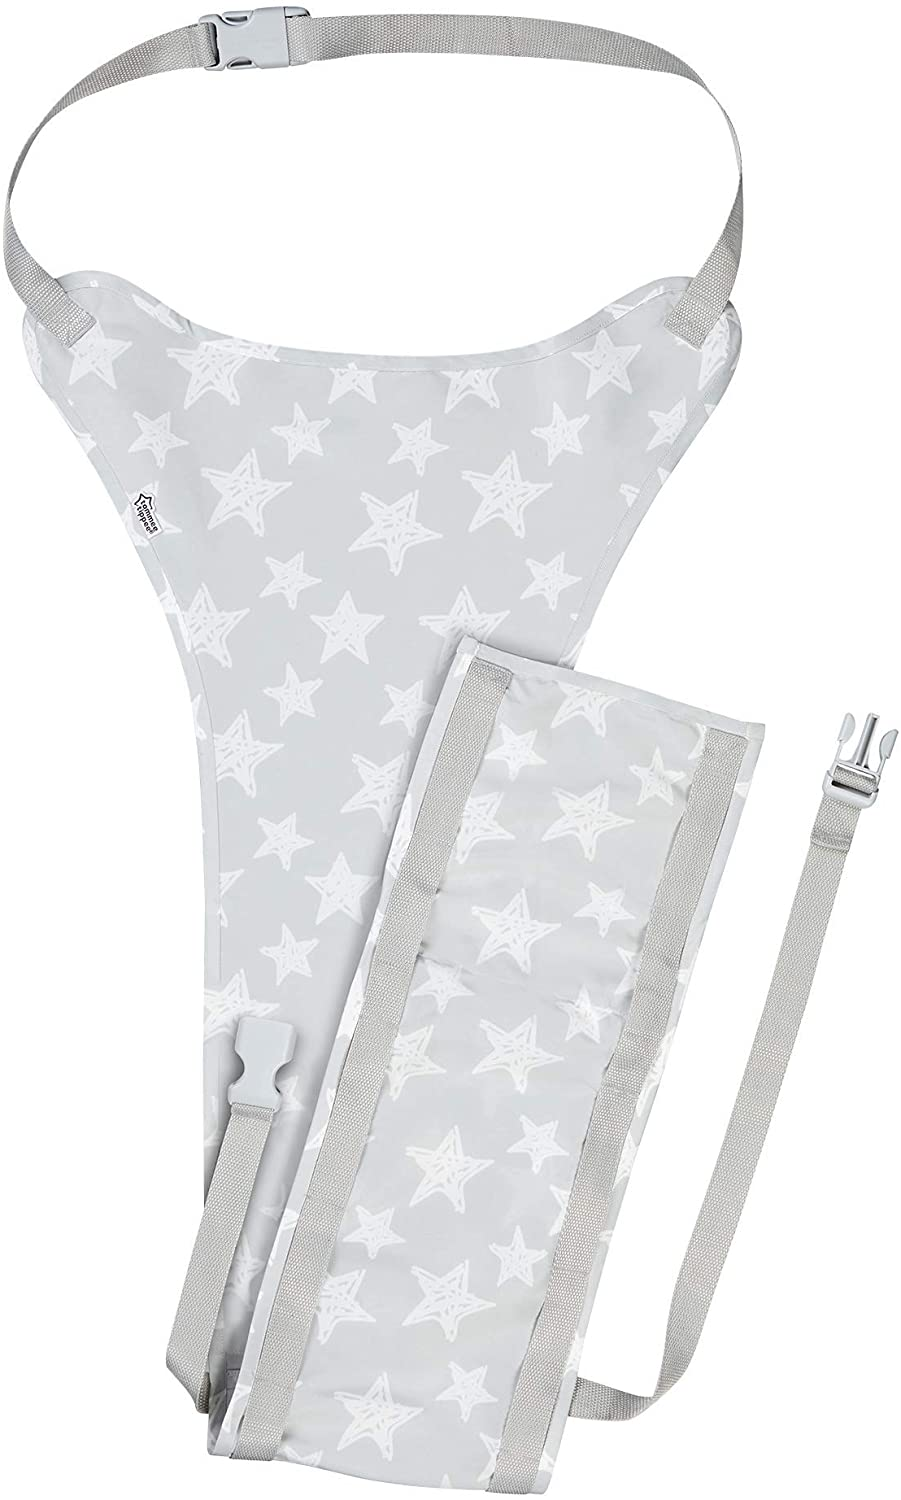 Tommee Tippee Chair Harness.